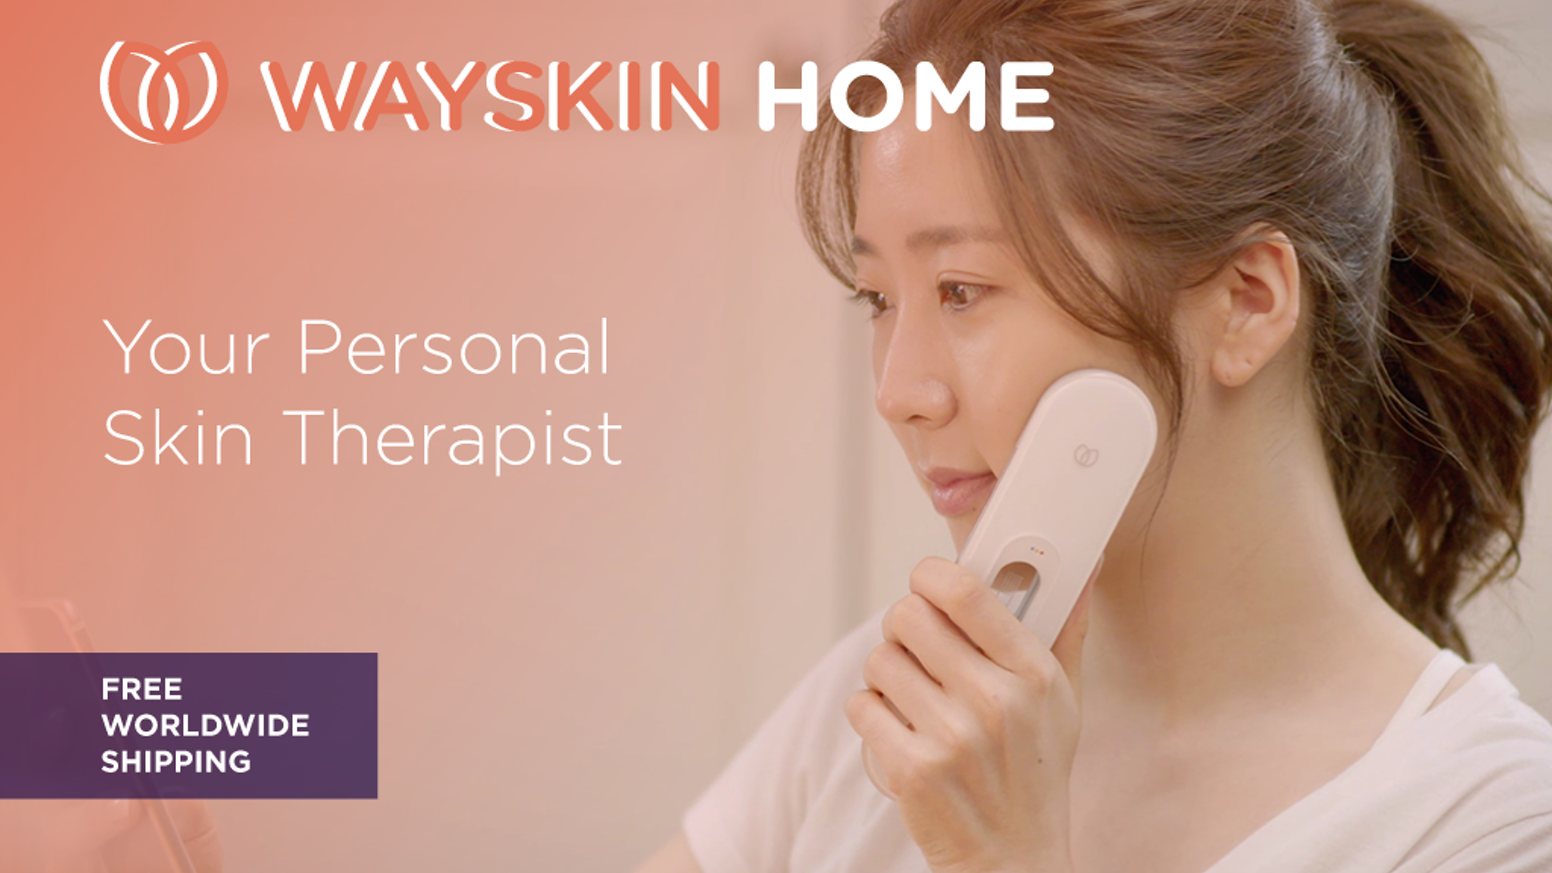 Care for your skin at home with a clinical-quality diagnosis and LED care.